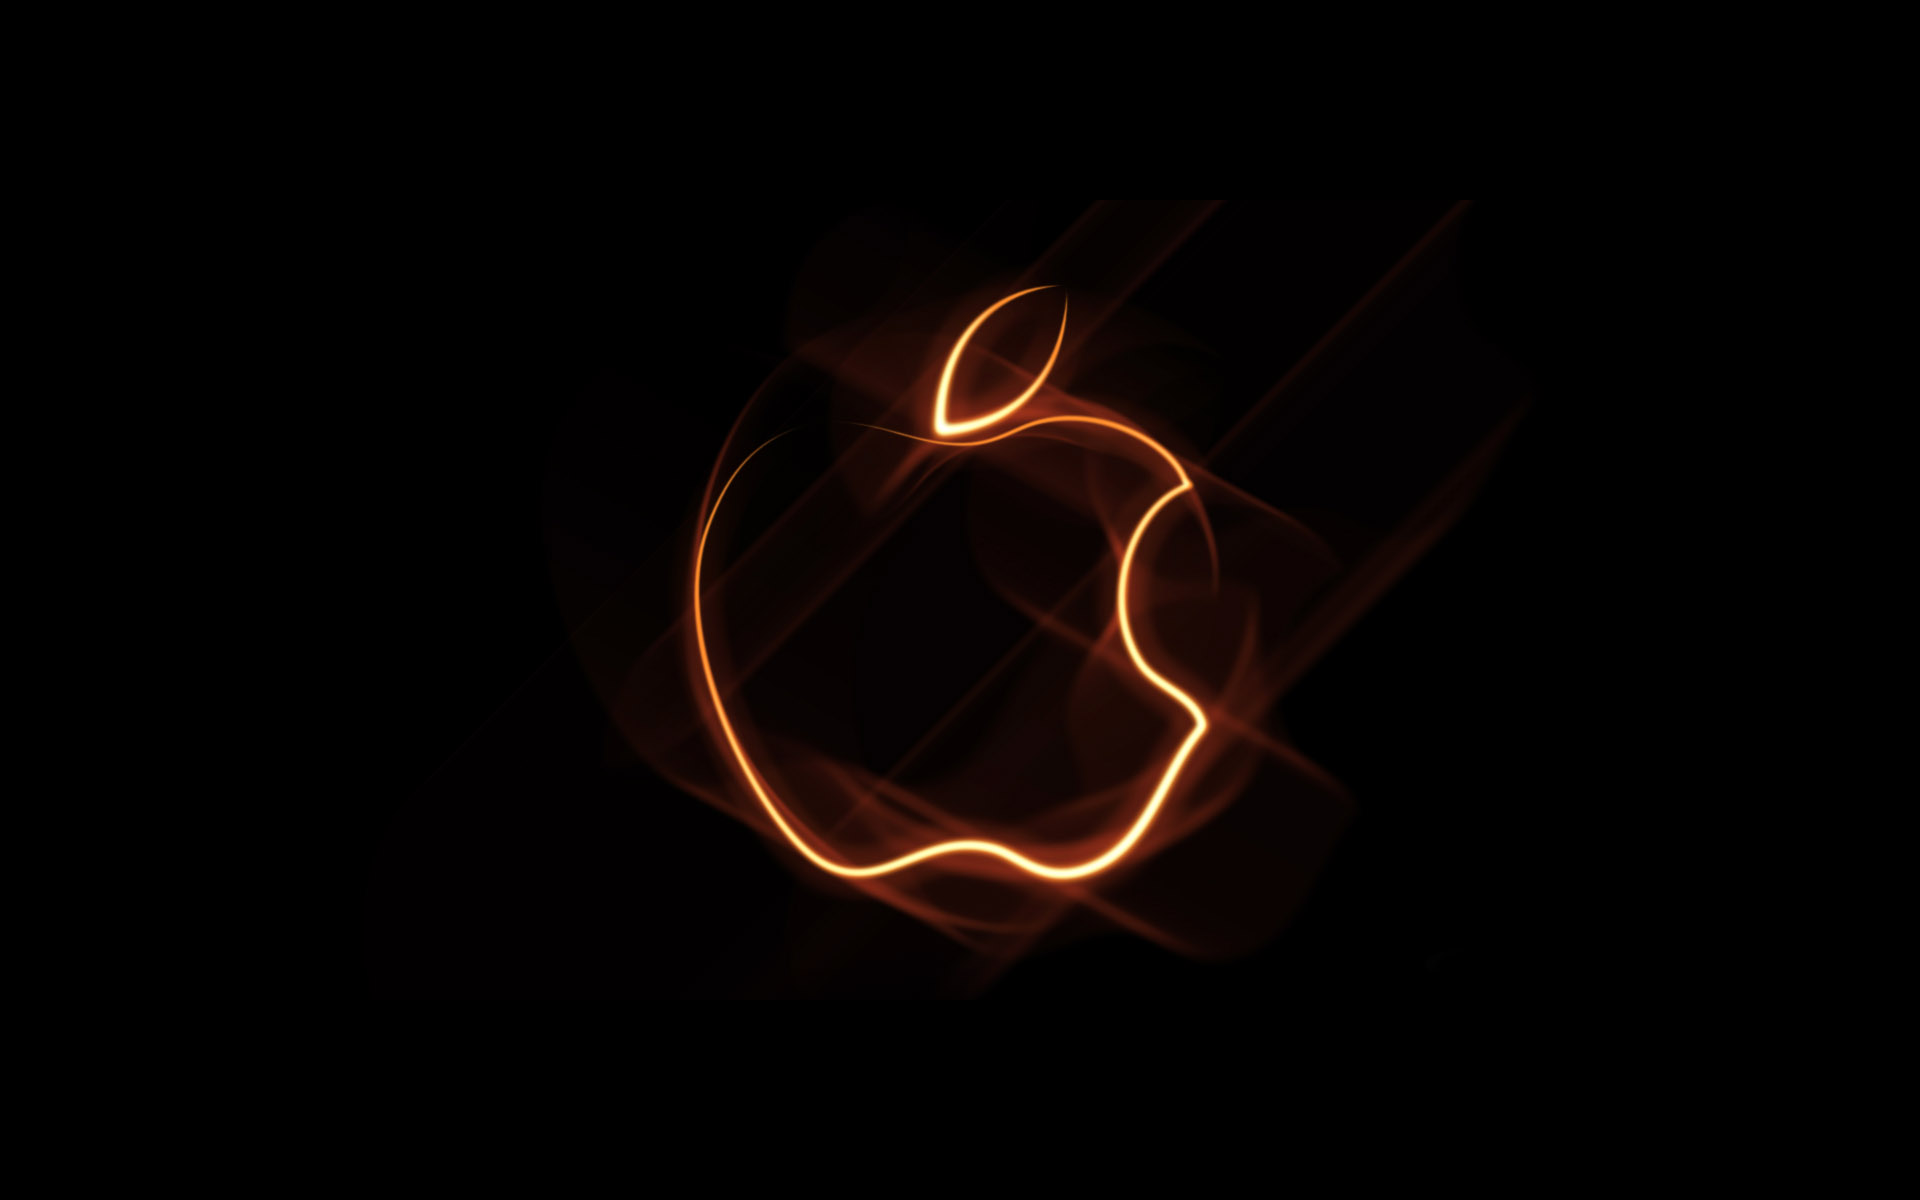 Apple Wallpapers - First HD Wallpapers